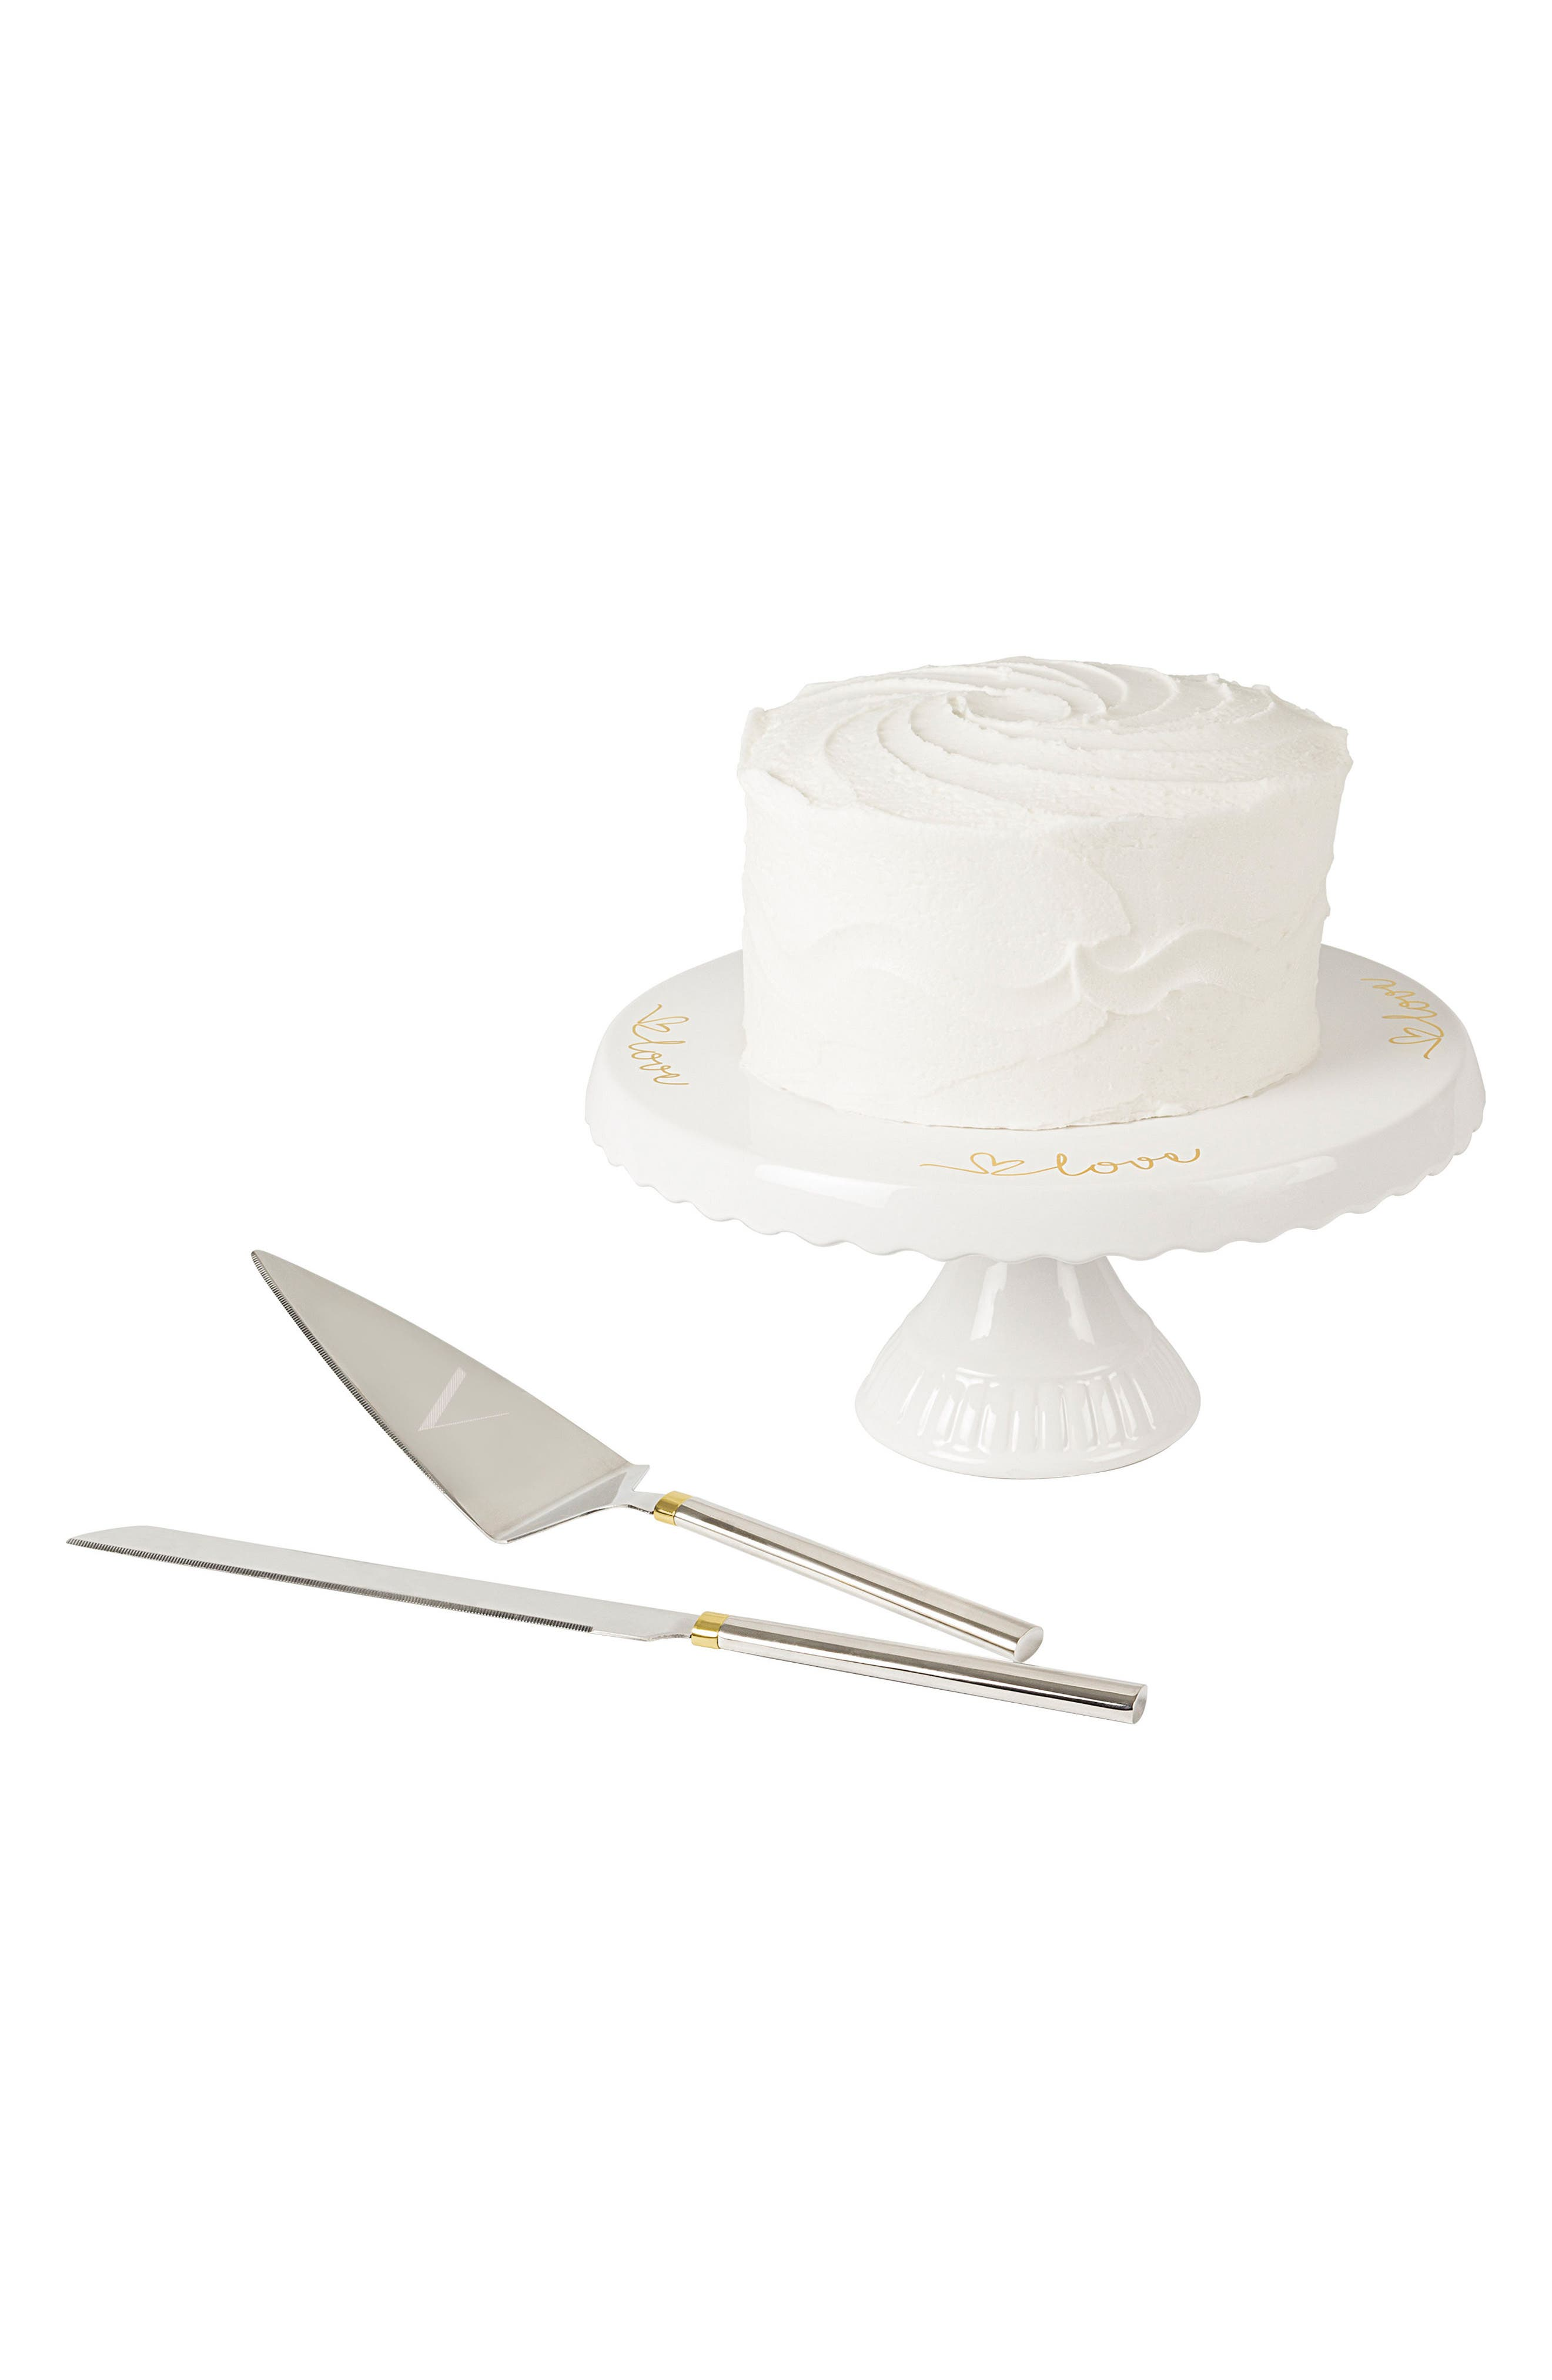 Love Monogram Cake Stand & Server Set,                             Main thumbnail 23, color,